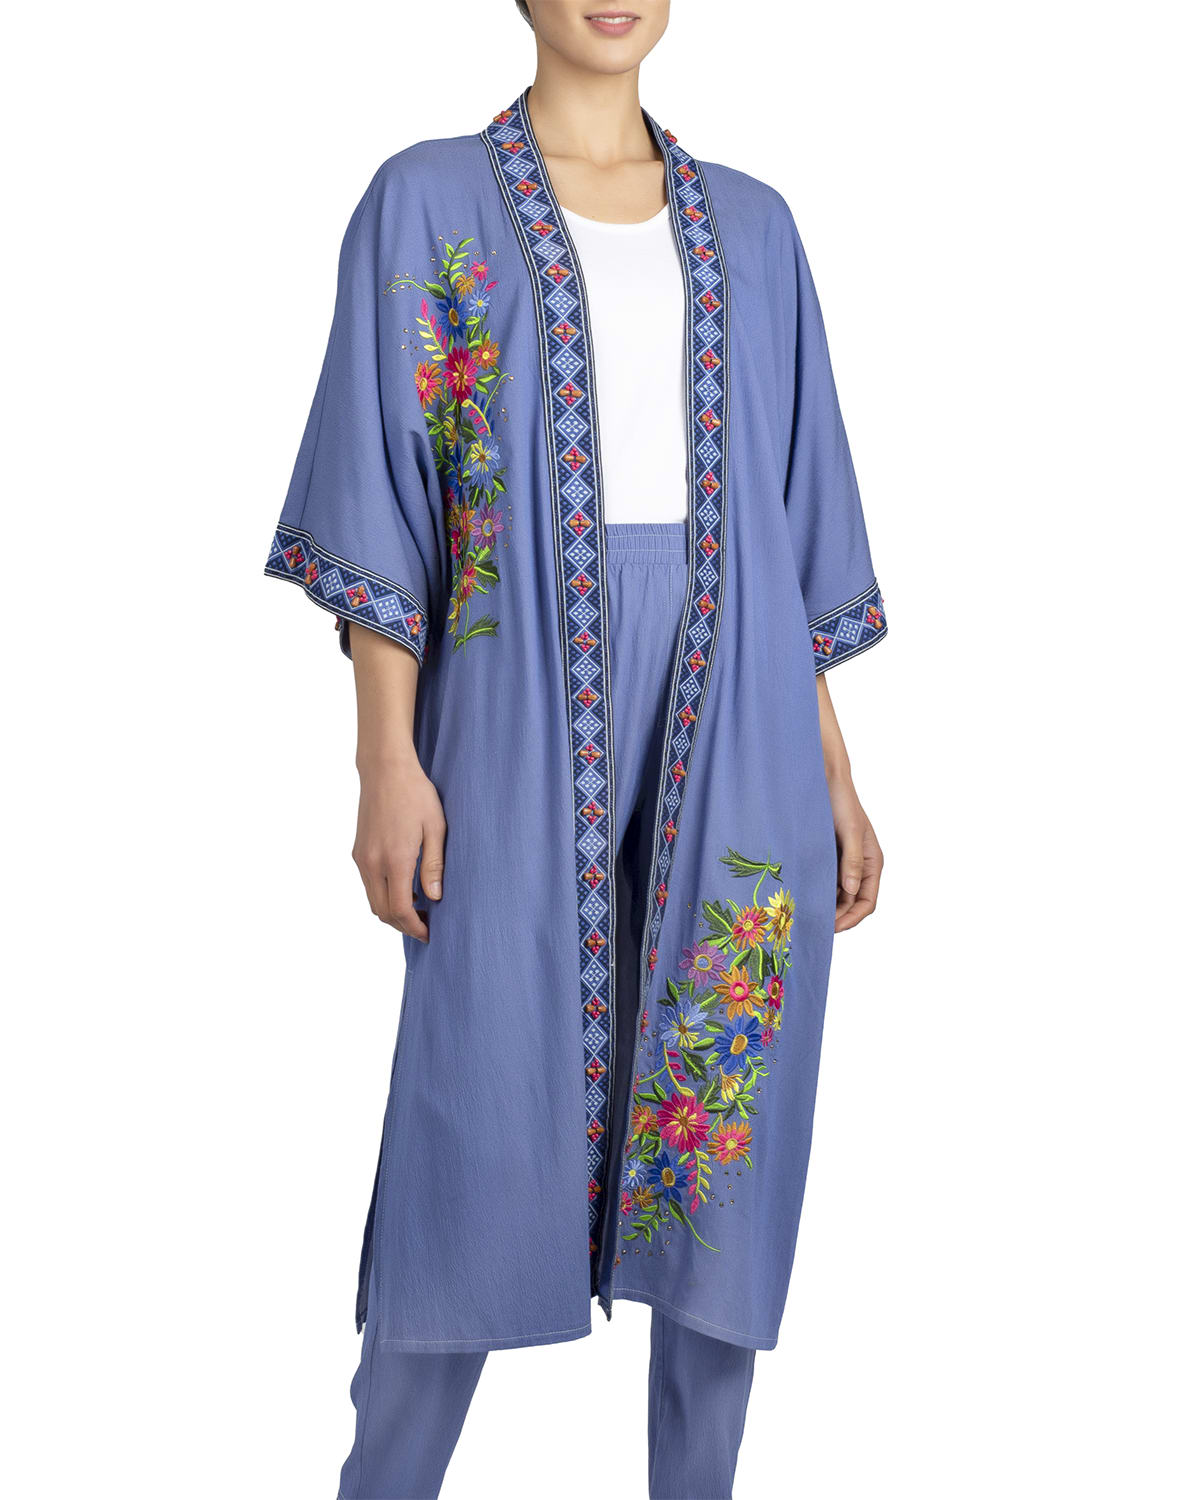 Chic and Relaxed Floral Embroidery Kimono